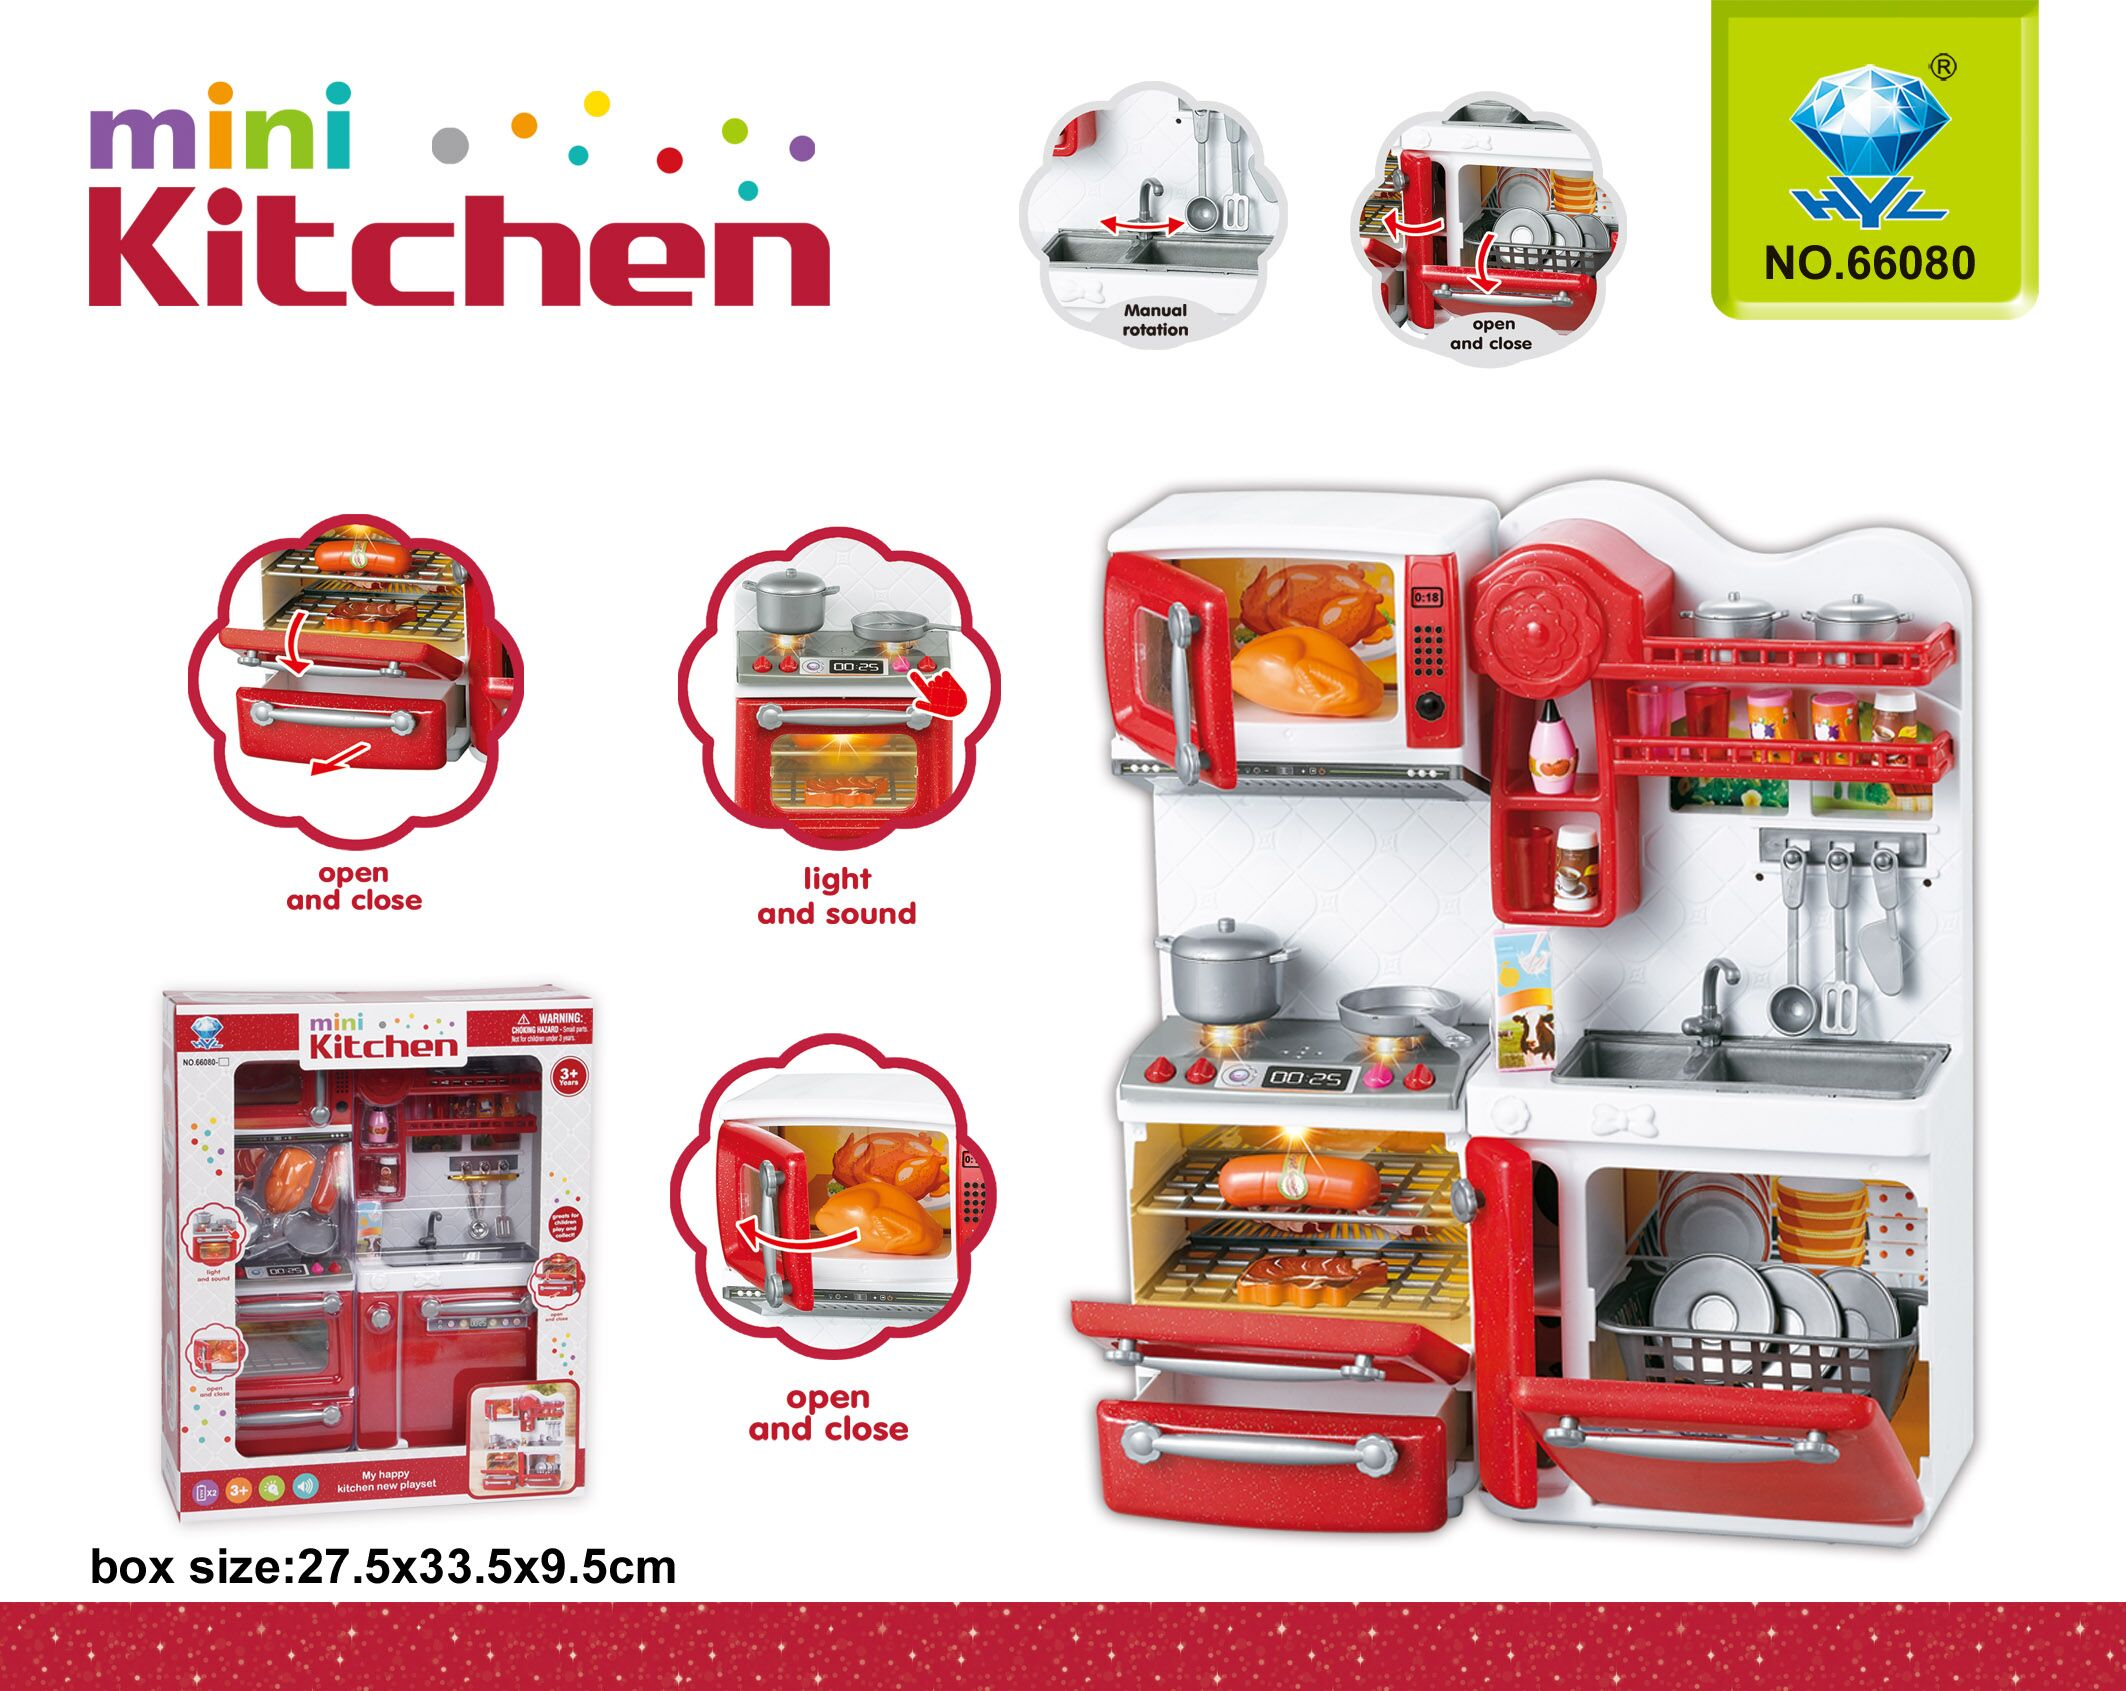 Hộp bếp Mini Kitchen 66080